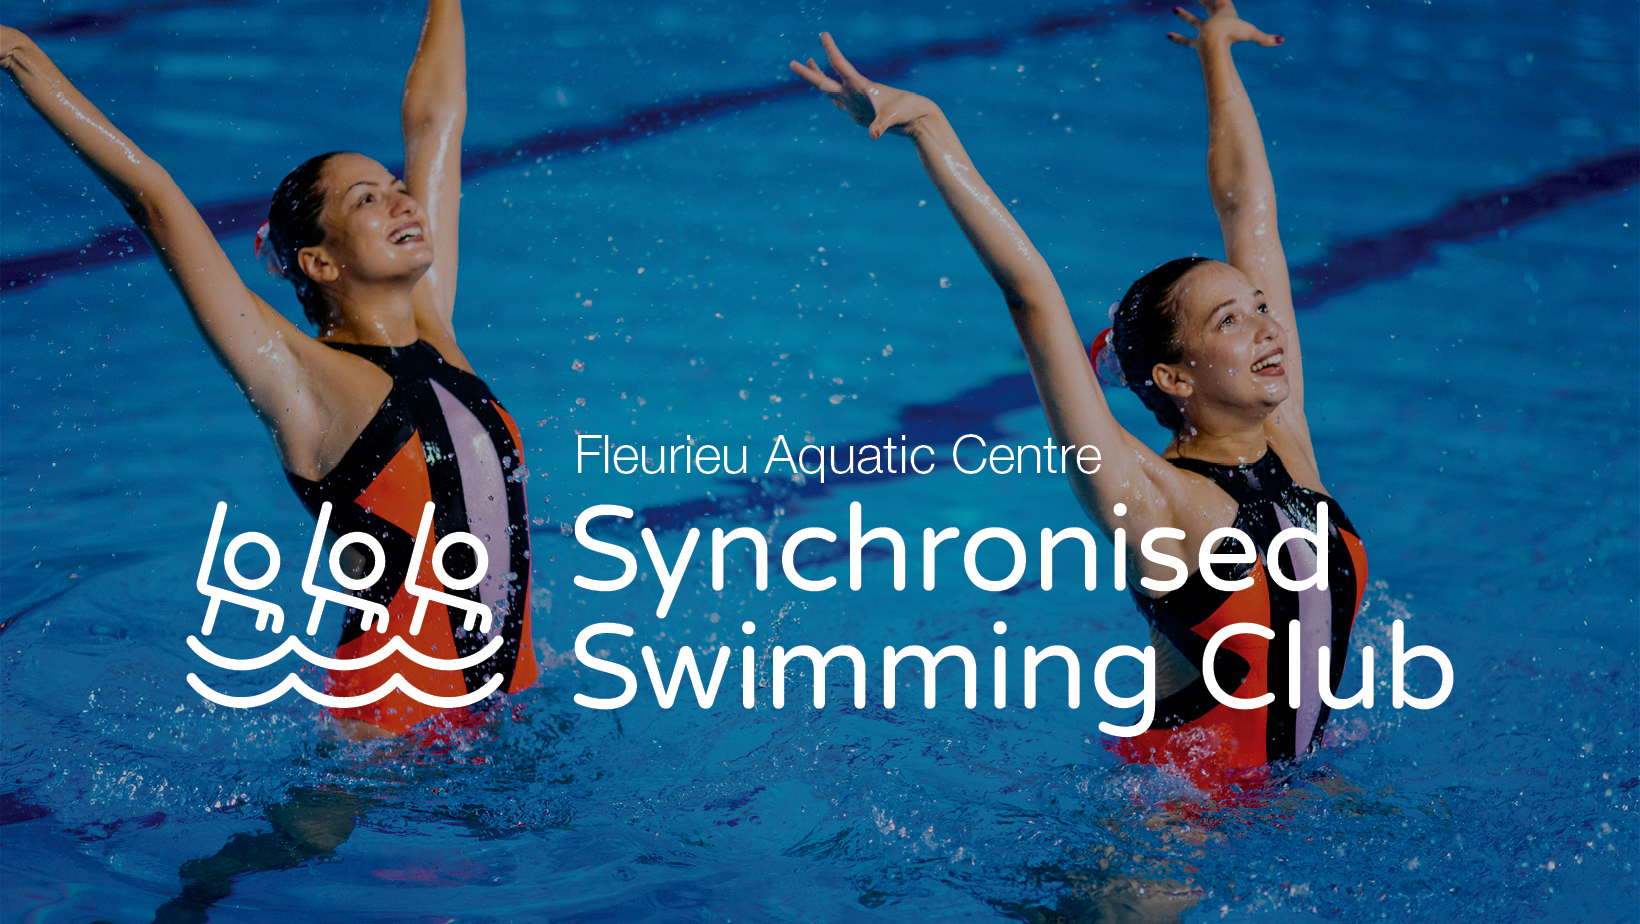 Synchronised Swimming Club at Fleurieu